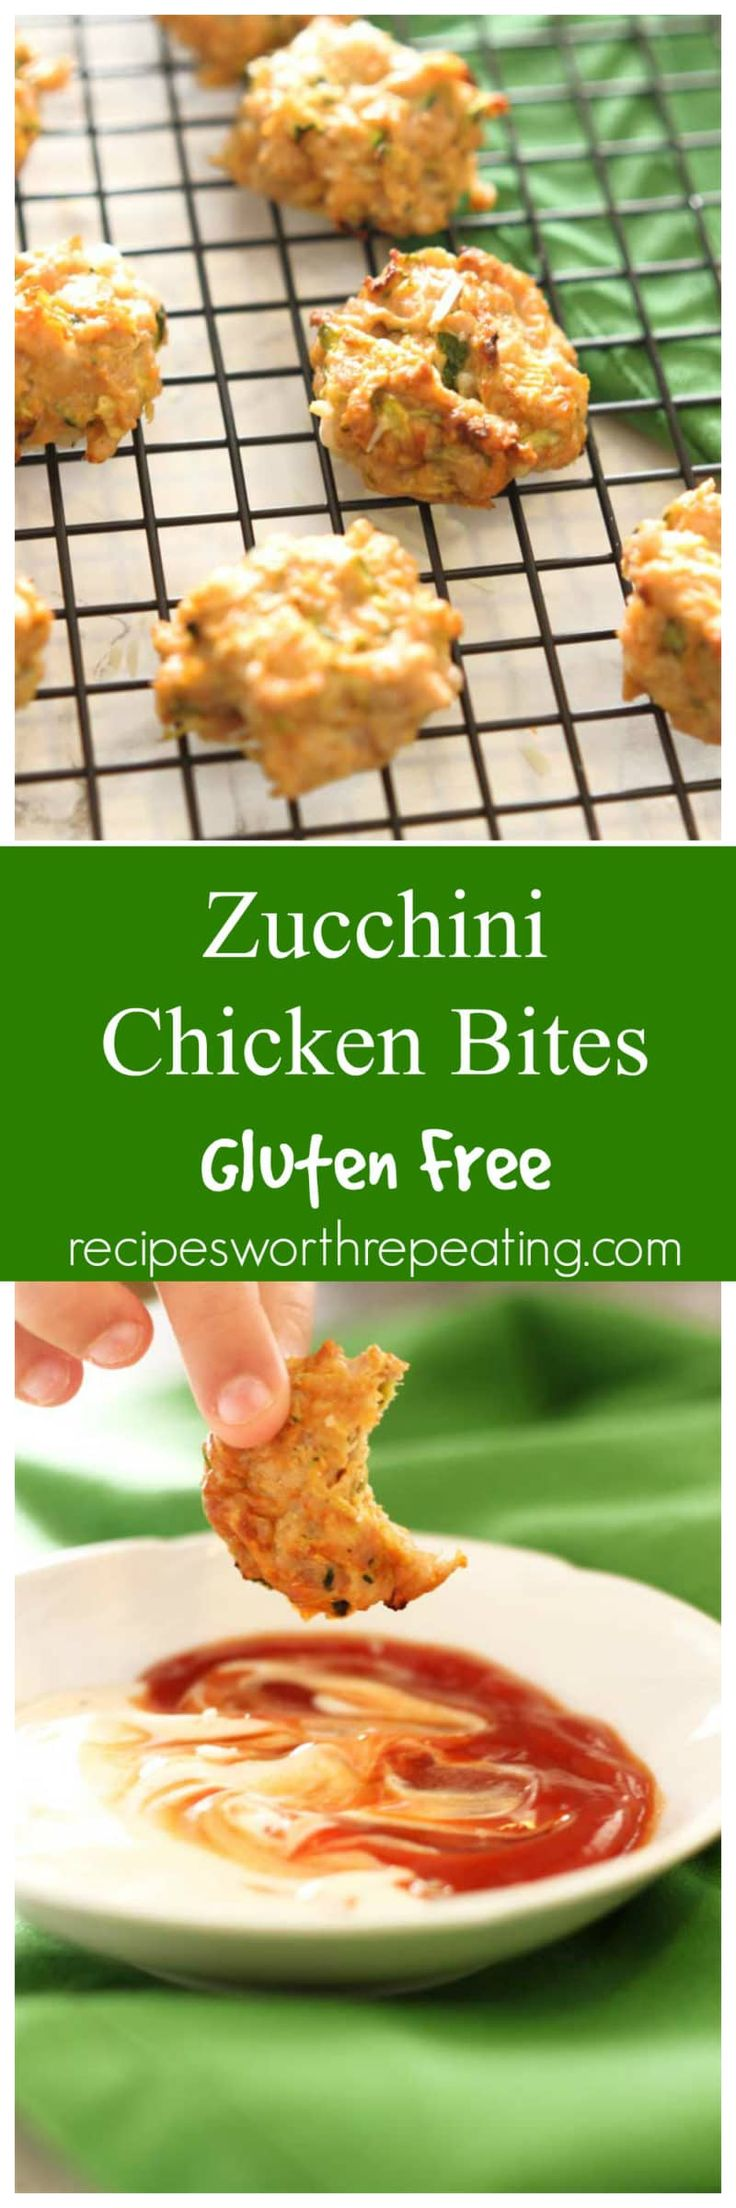 Zucchini Chicken Bites | Recipes Worth Repeating | These Zucchini Chicken Bites are easy to make, super healthy and packed full of protein! Mixed with freshly shredded zucchini, ground chicken and a little bit of spice, these little bites are perfect for an afternoon snack!